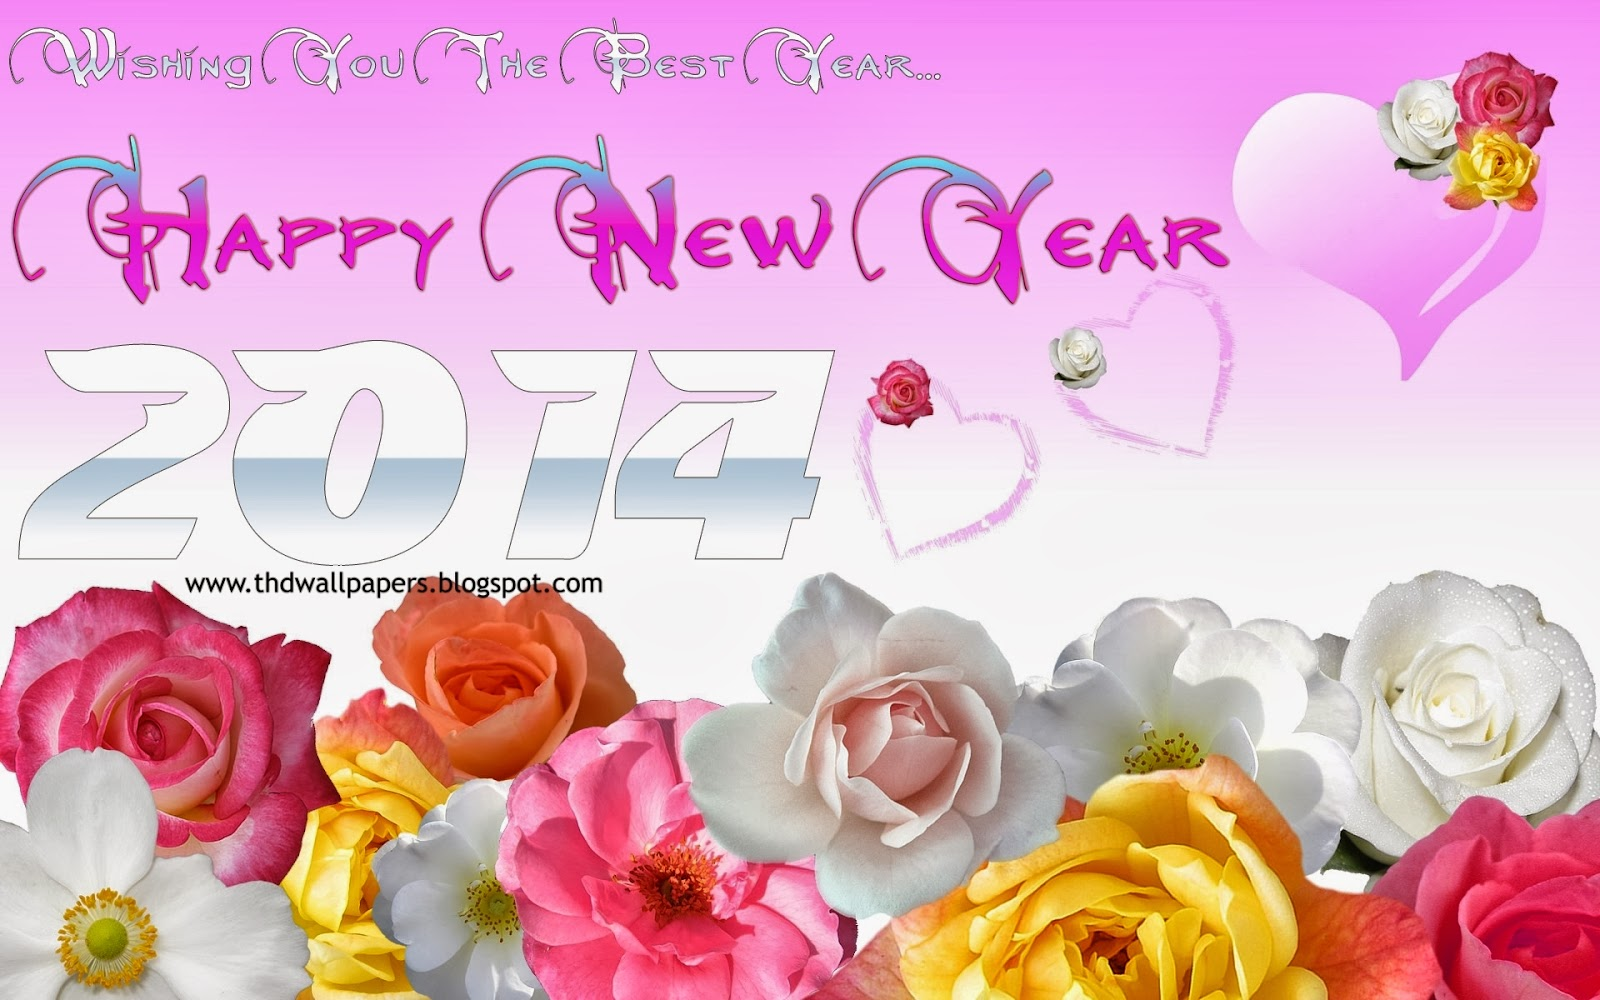 Happy New Year 2014 Wishes Wallpapers For Free Download 2014 Happy New . .Happy New Year 2014  Religious Wishes